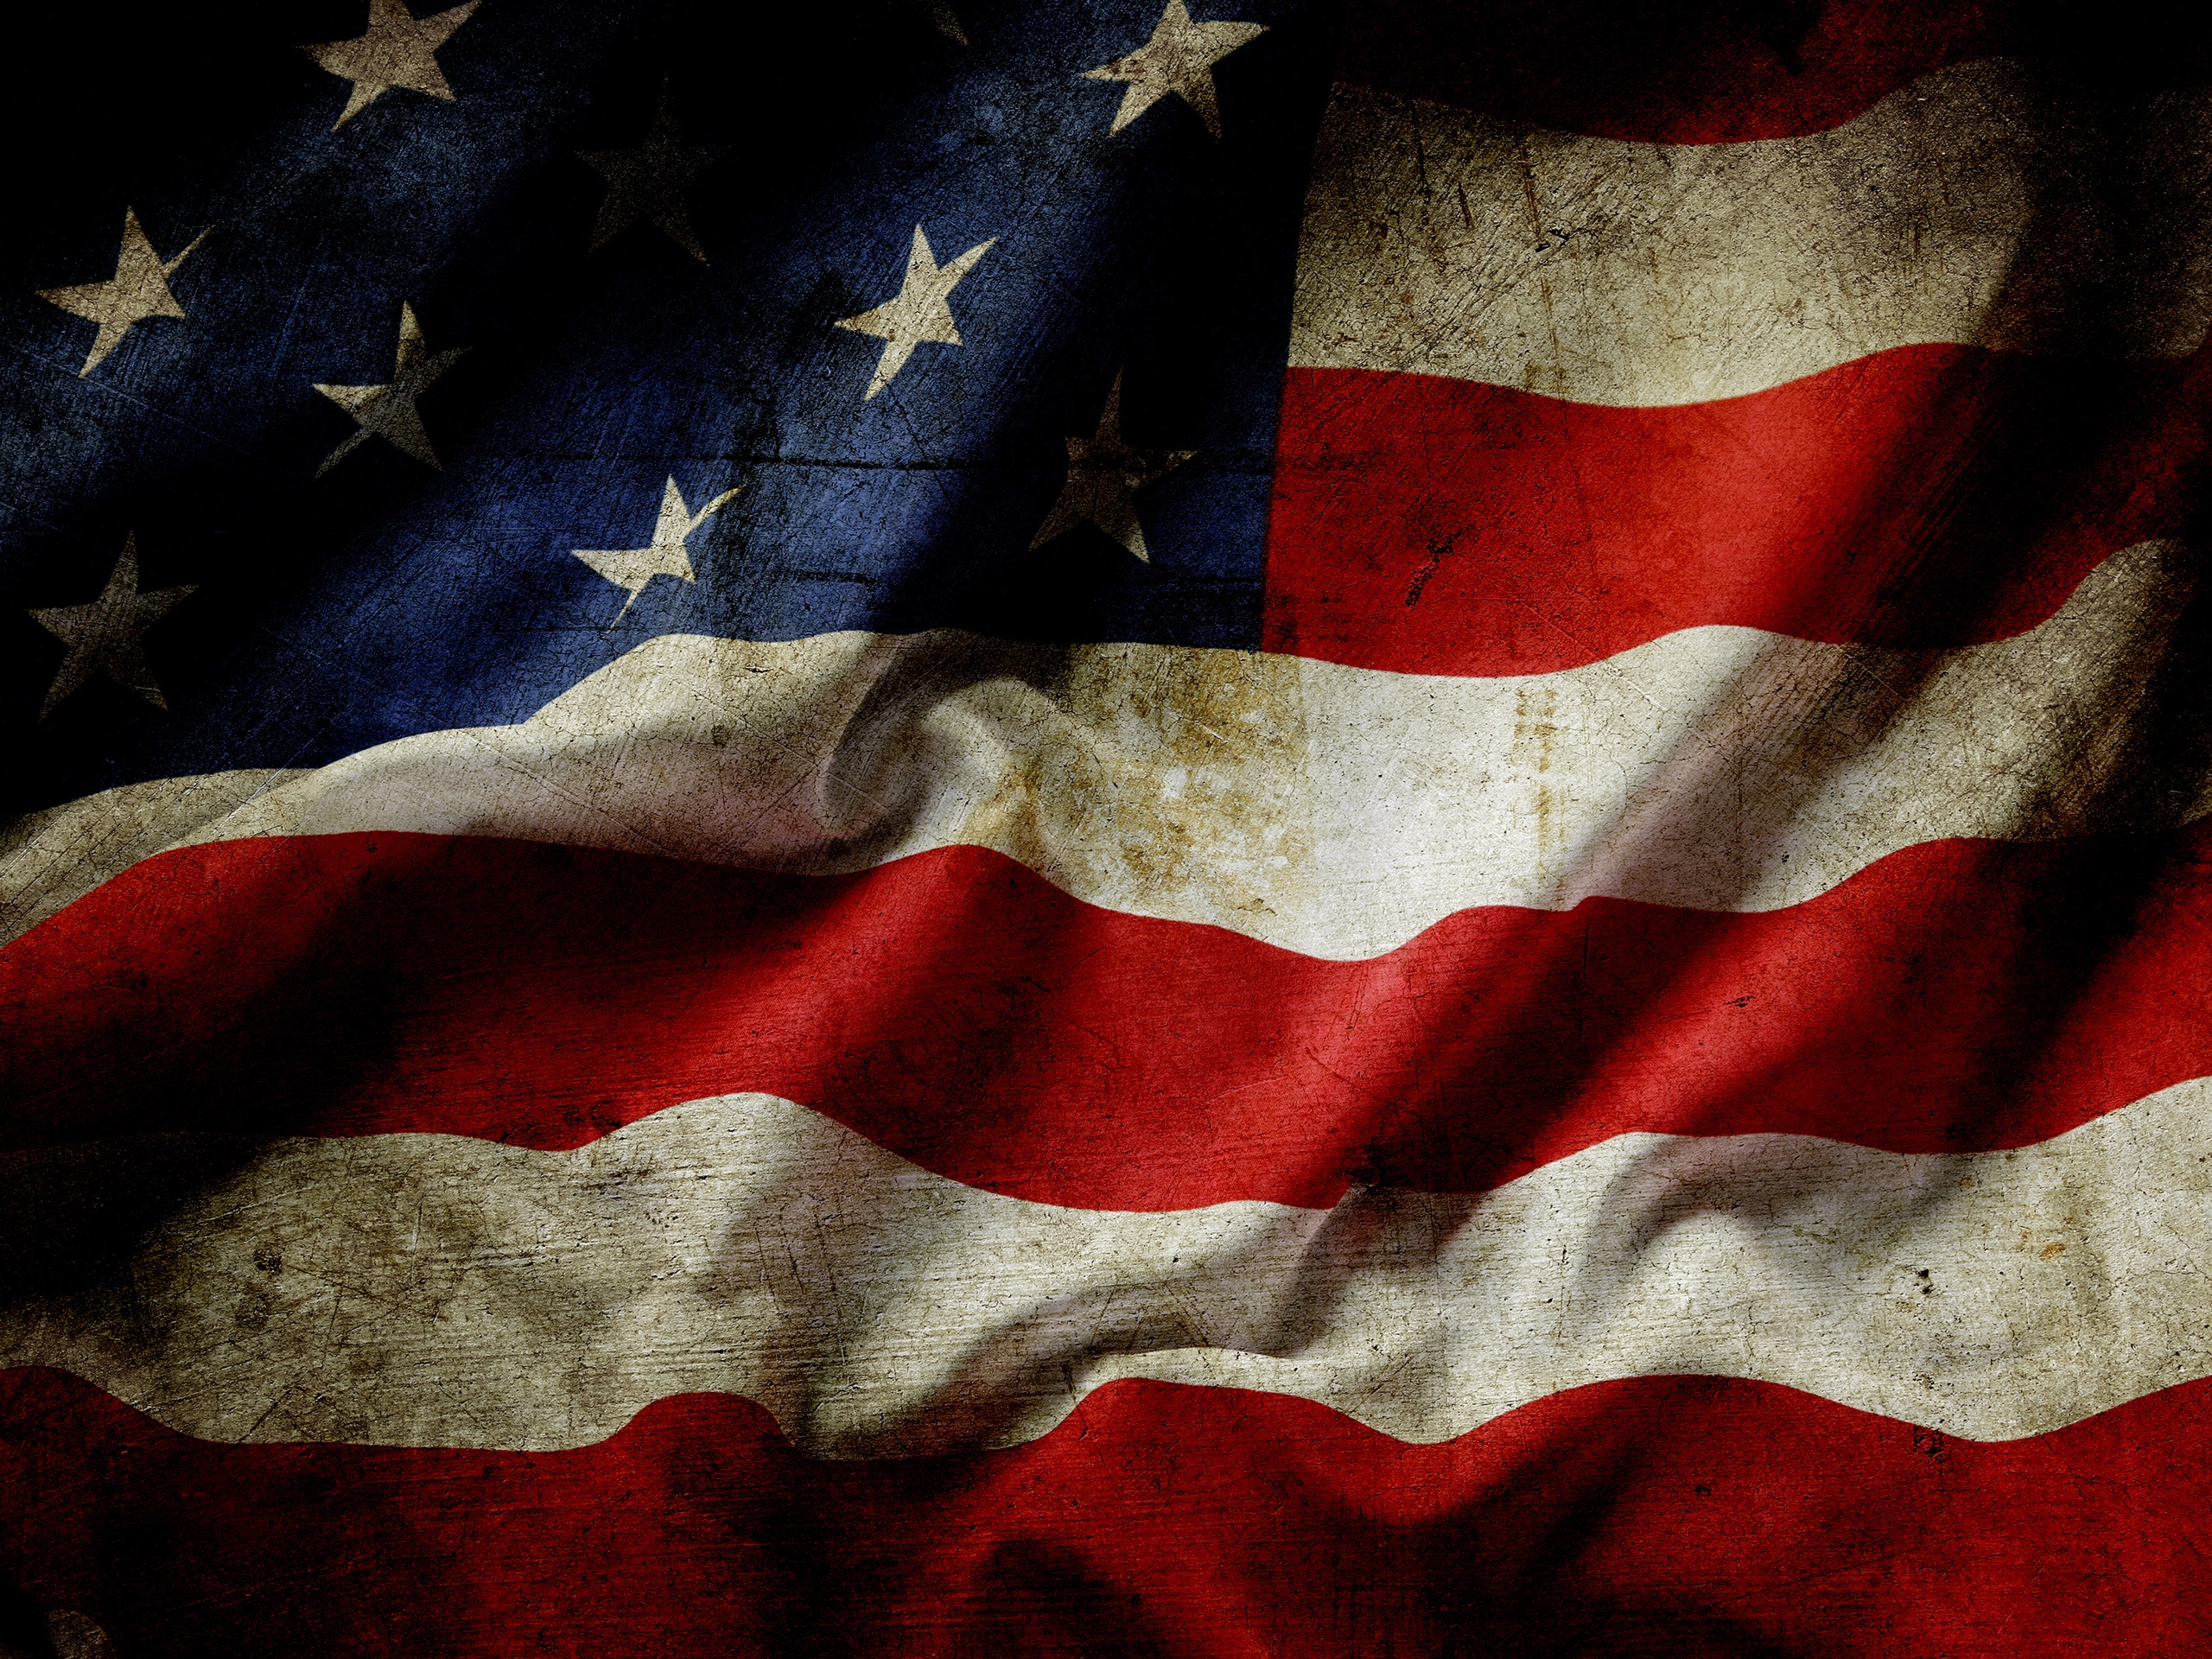 Wallpaper Usa Flag Dust 3840x2160 Uhd 4k Picture Image